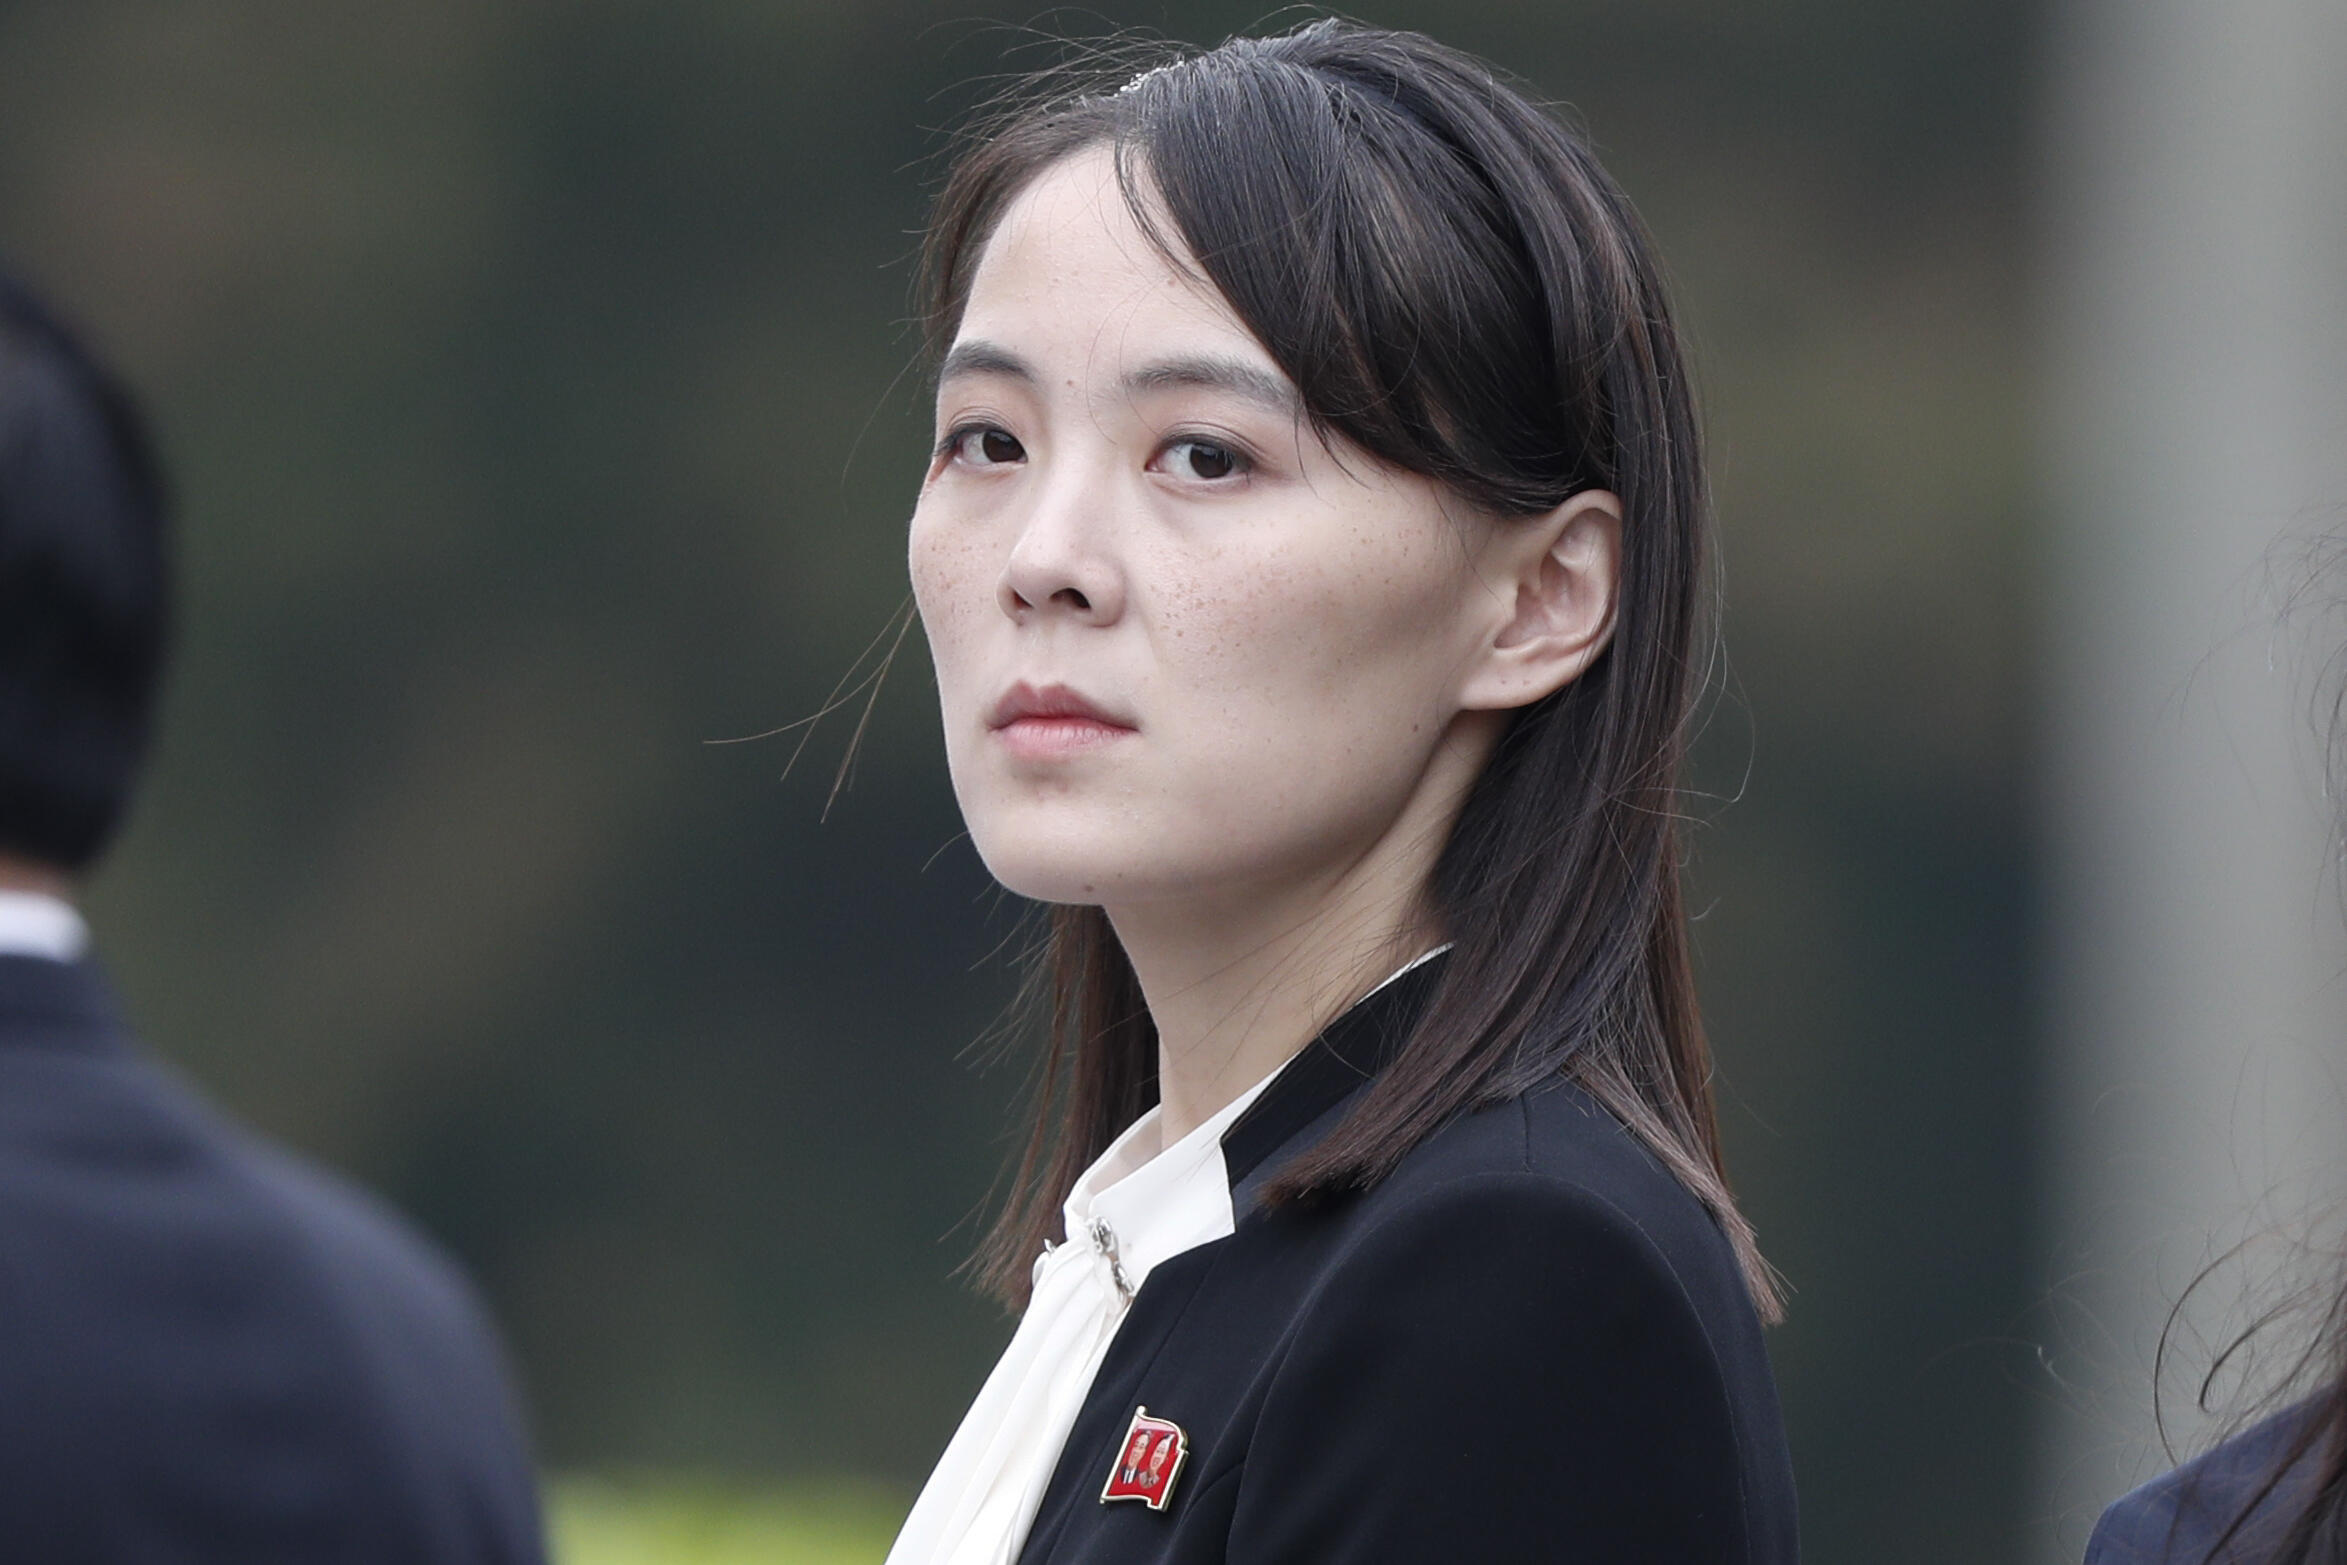 Kim Yo Jong, sister of North Korea's leader Kim Jong Un, called South Korea's foreign minister 'impudent' for her comments on the coronavirus